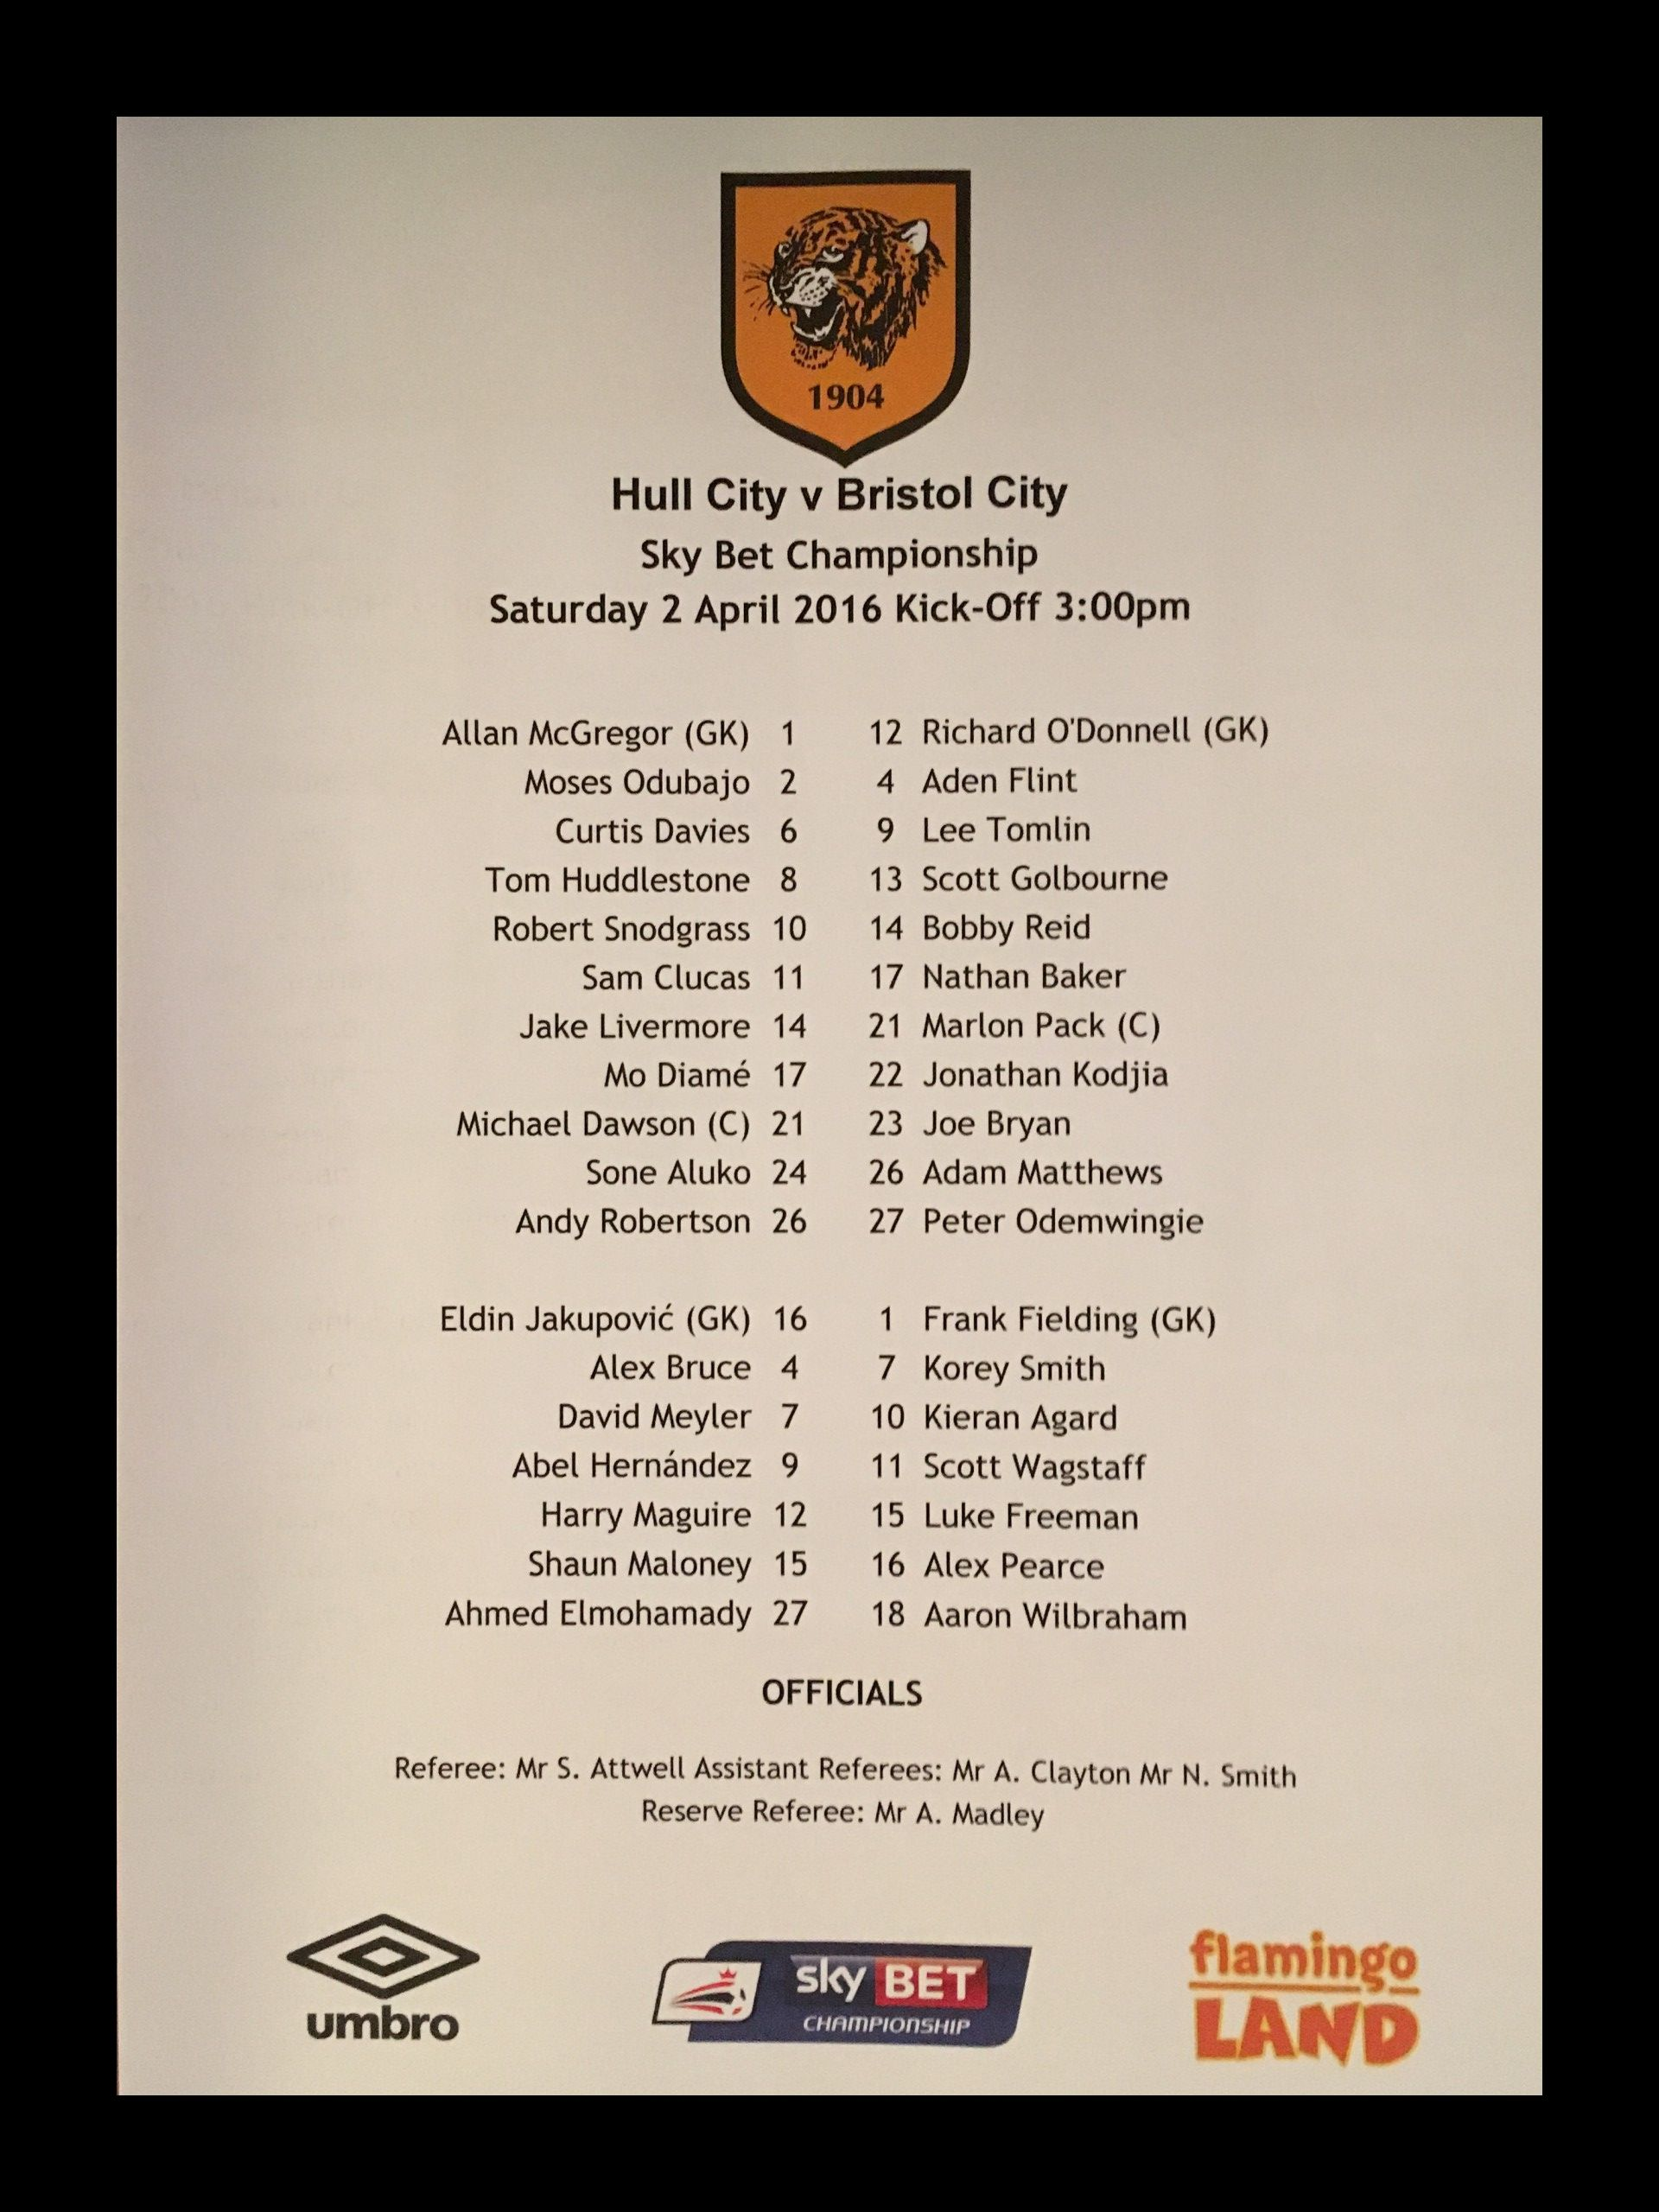 Hull City v Bristol City 02-04-2016 Team Sheet